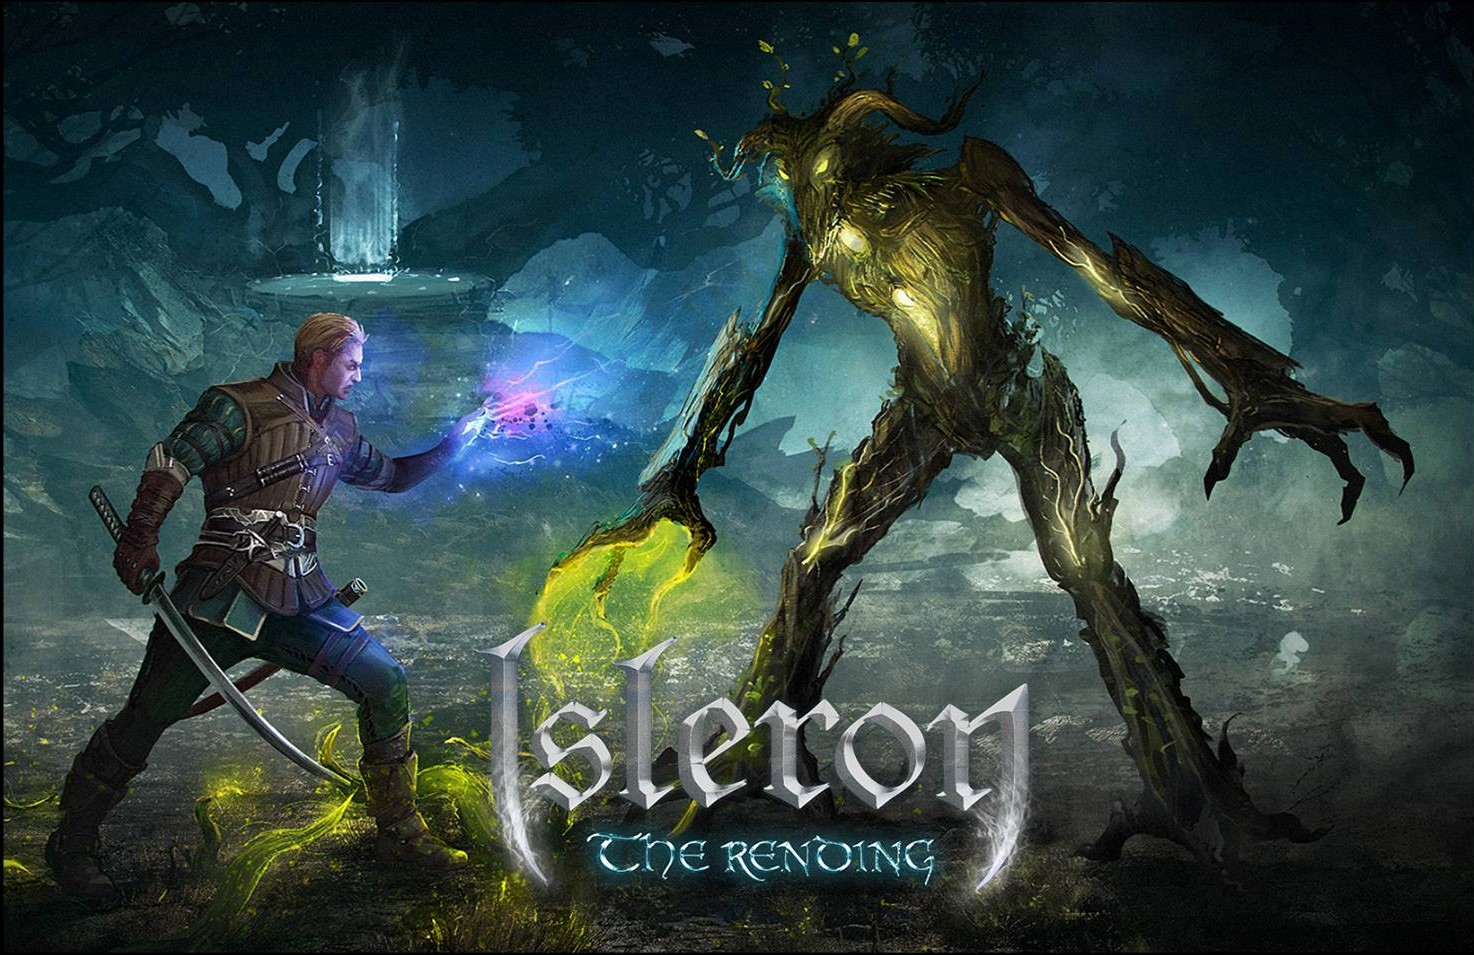 gameimg_islerontherending-01